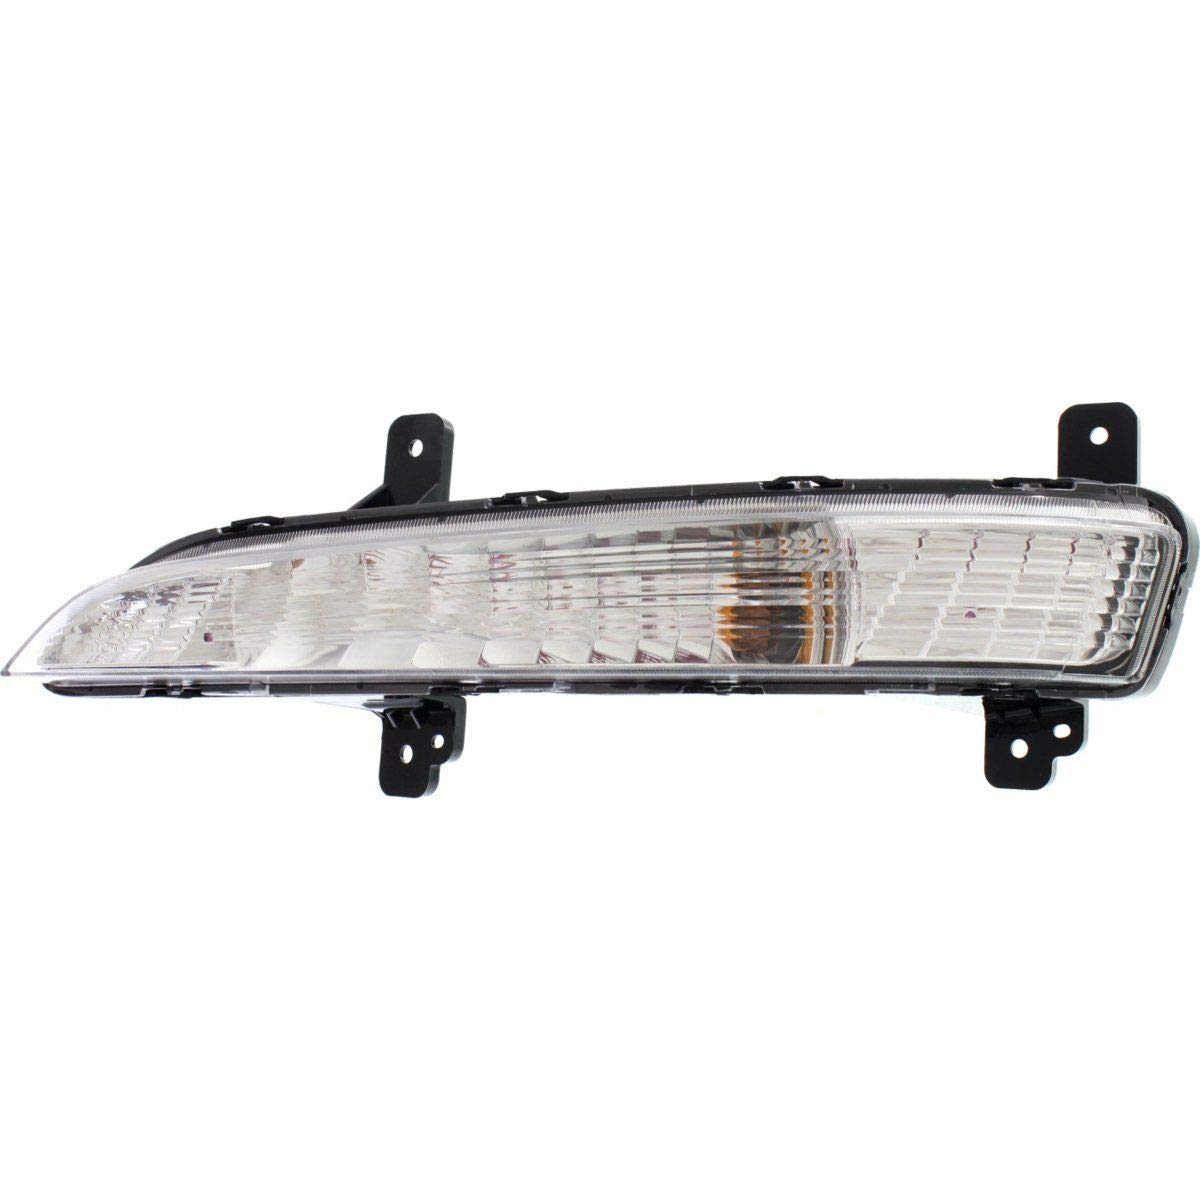 New Front Left Driver Side Park Light Assembly For 2013-2017 Chevrolet Traverse Signal Light GM2530135 23305608